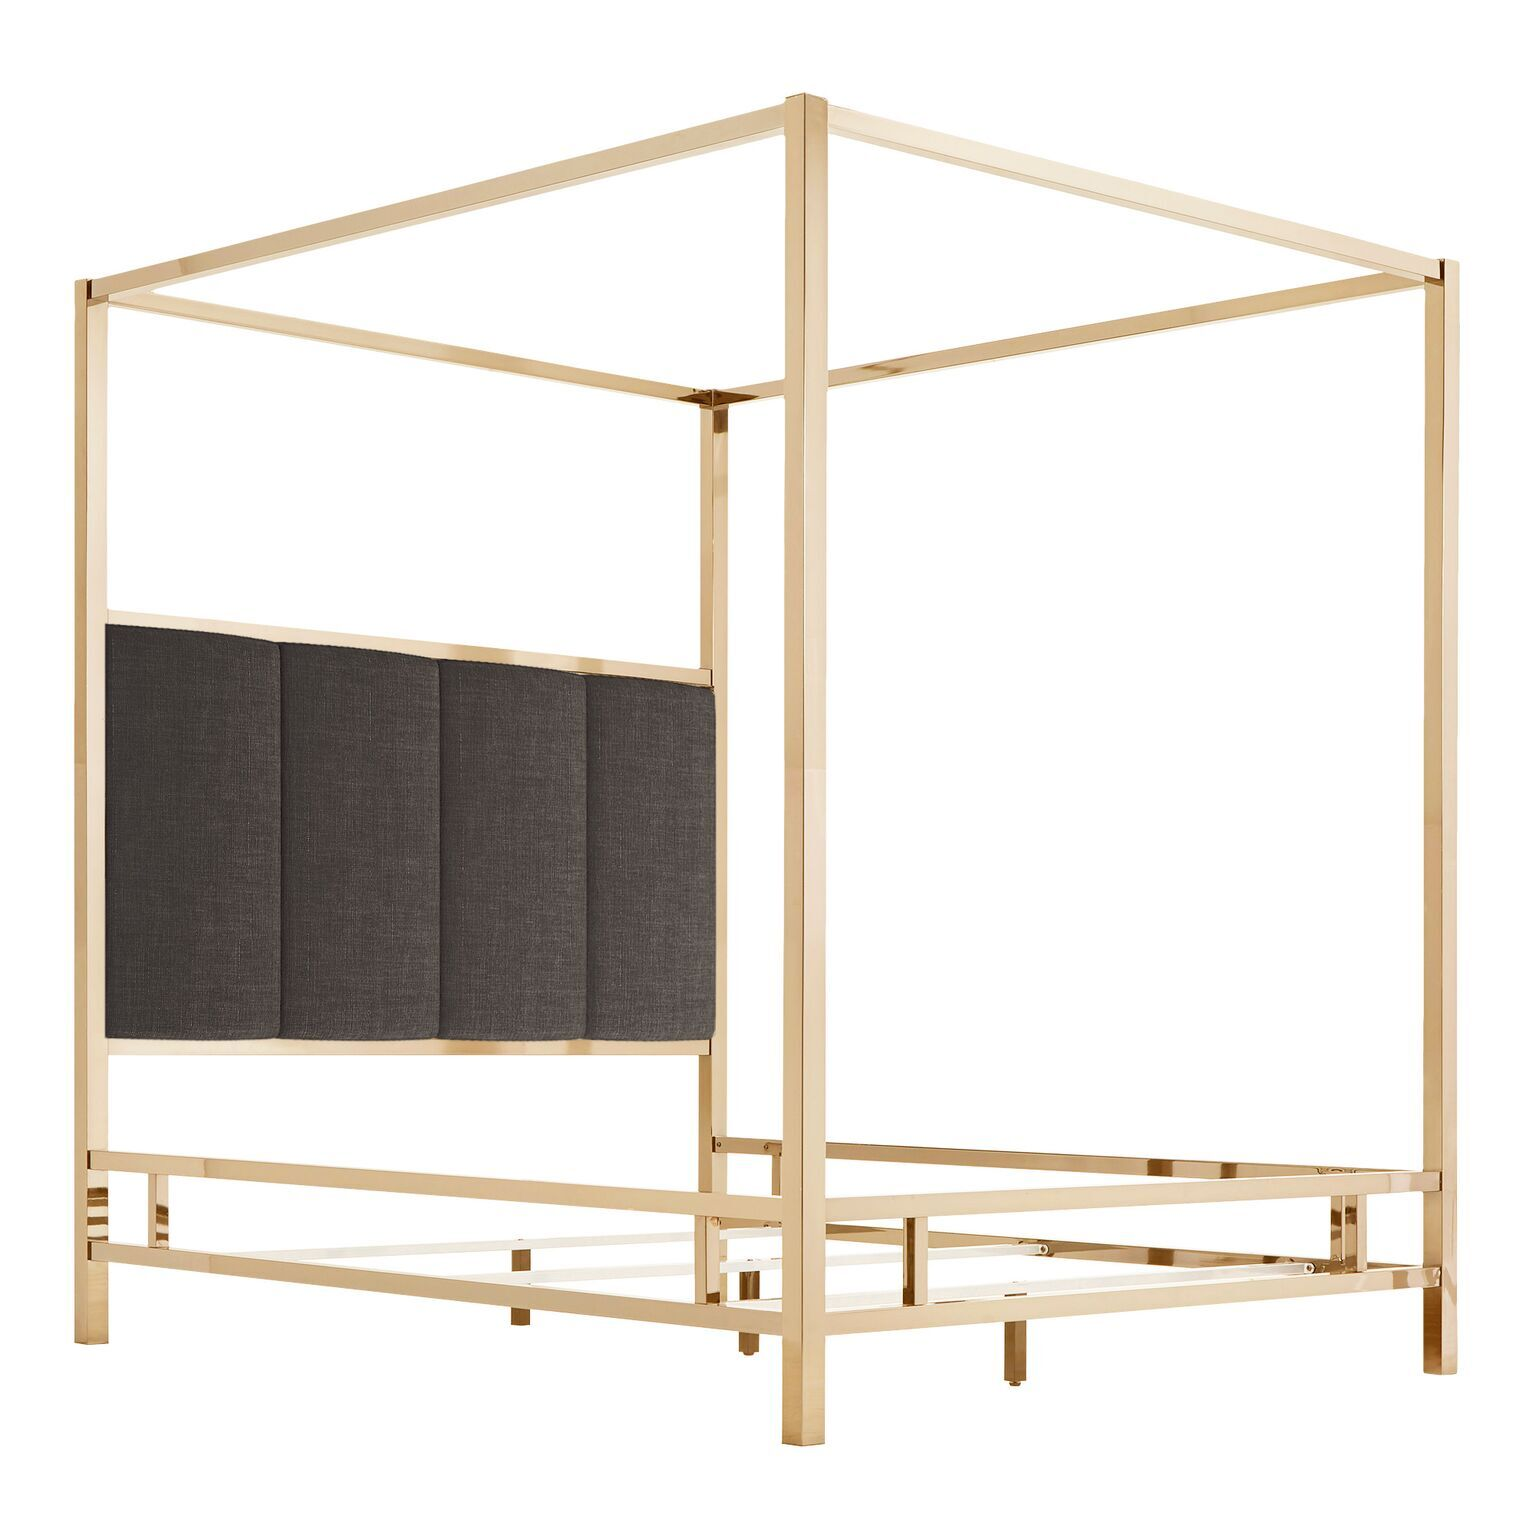 Wicklund Upholstered Canopy Bed Color (Frame/Headboard): Champagne Gold/Dark Gray, Size: Full